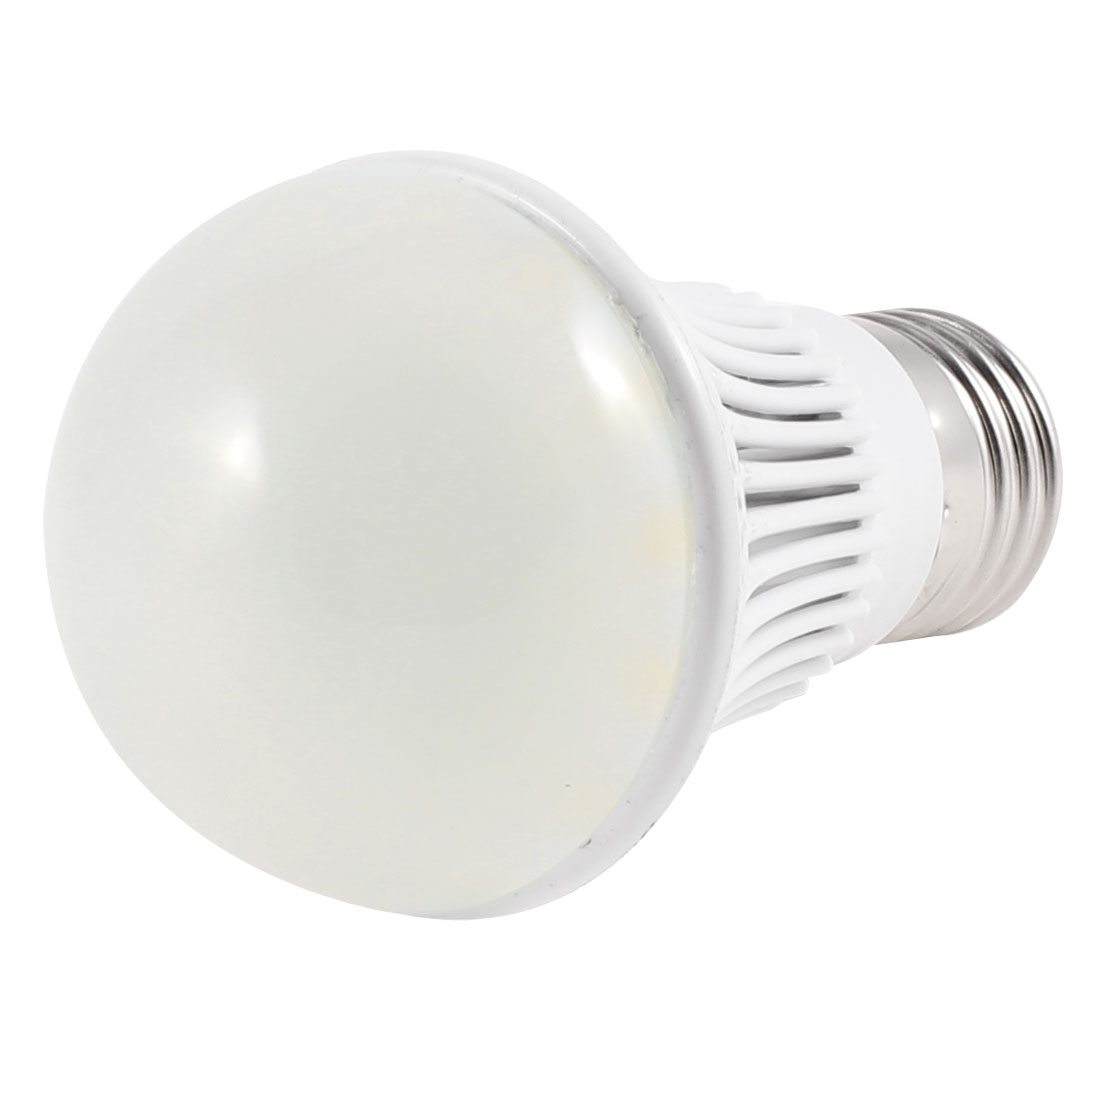 Bedroom E27 Screw Base 3000K Yellow LED Light Ball Bulb 4W AC 220V